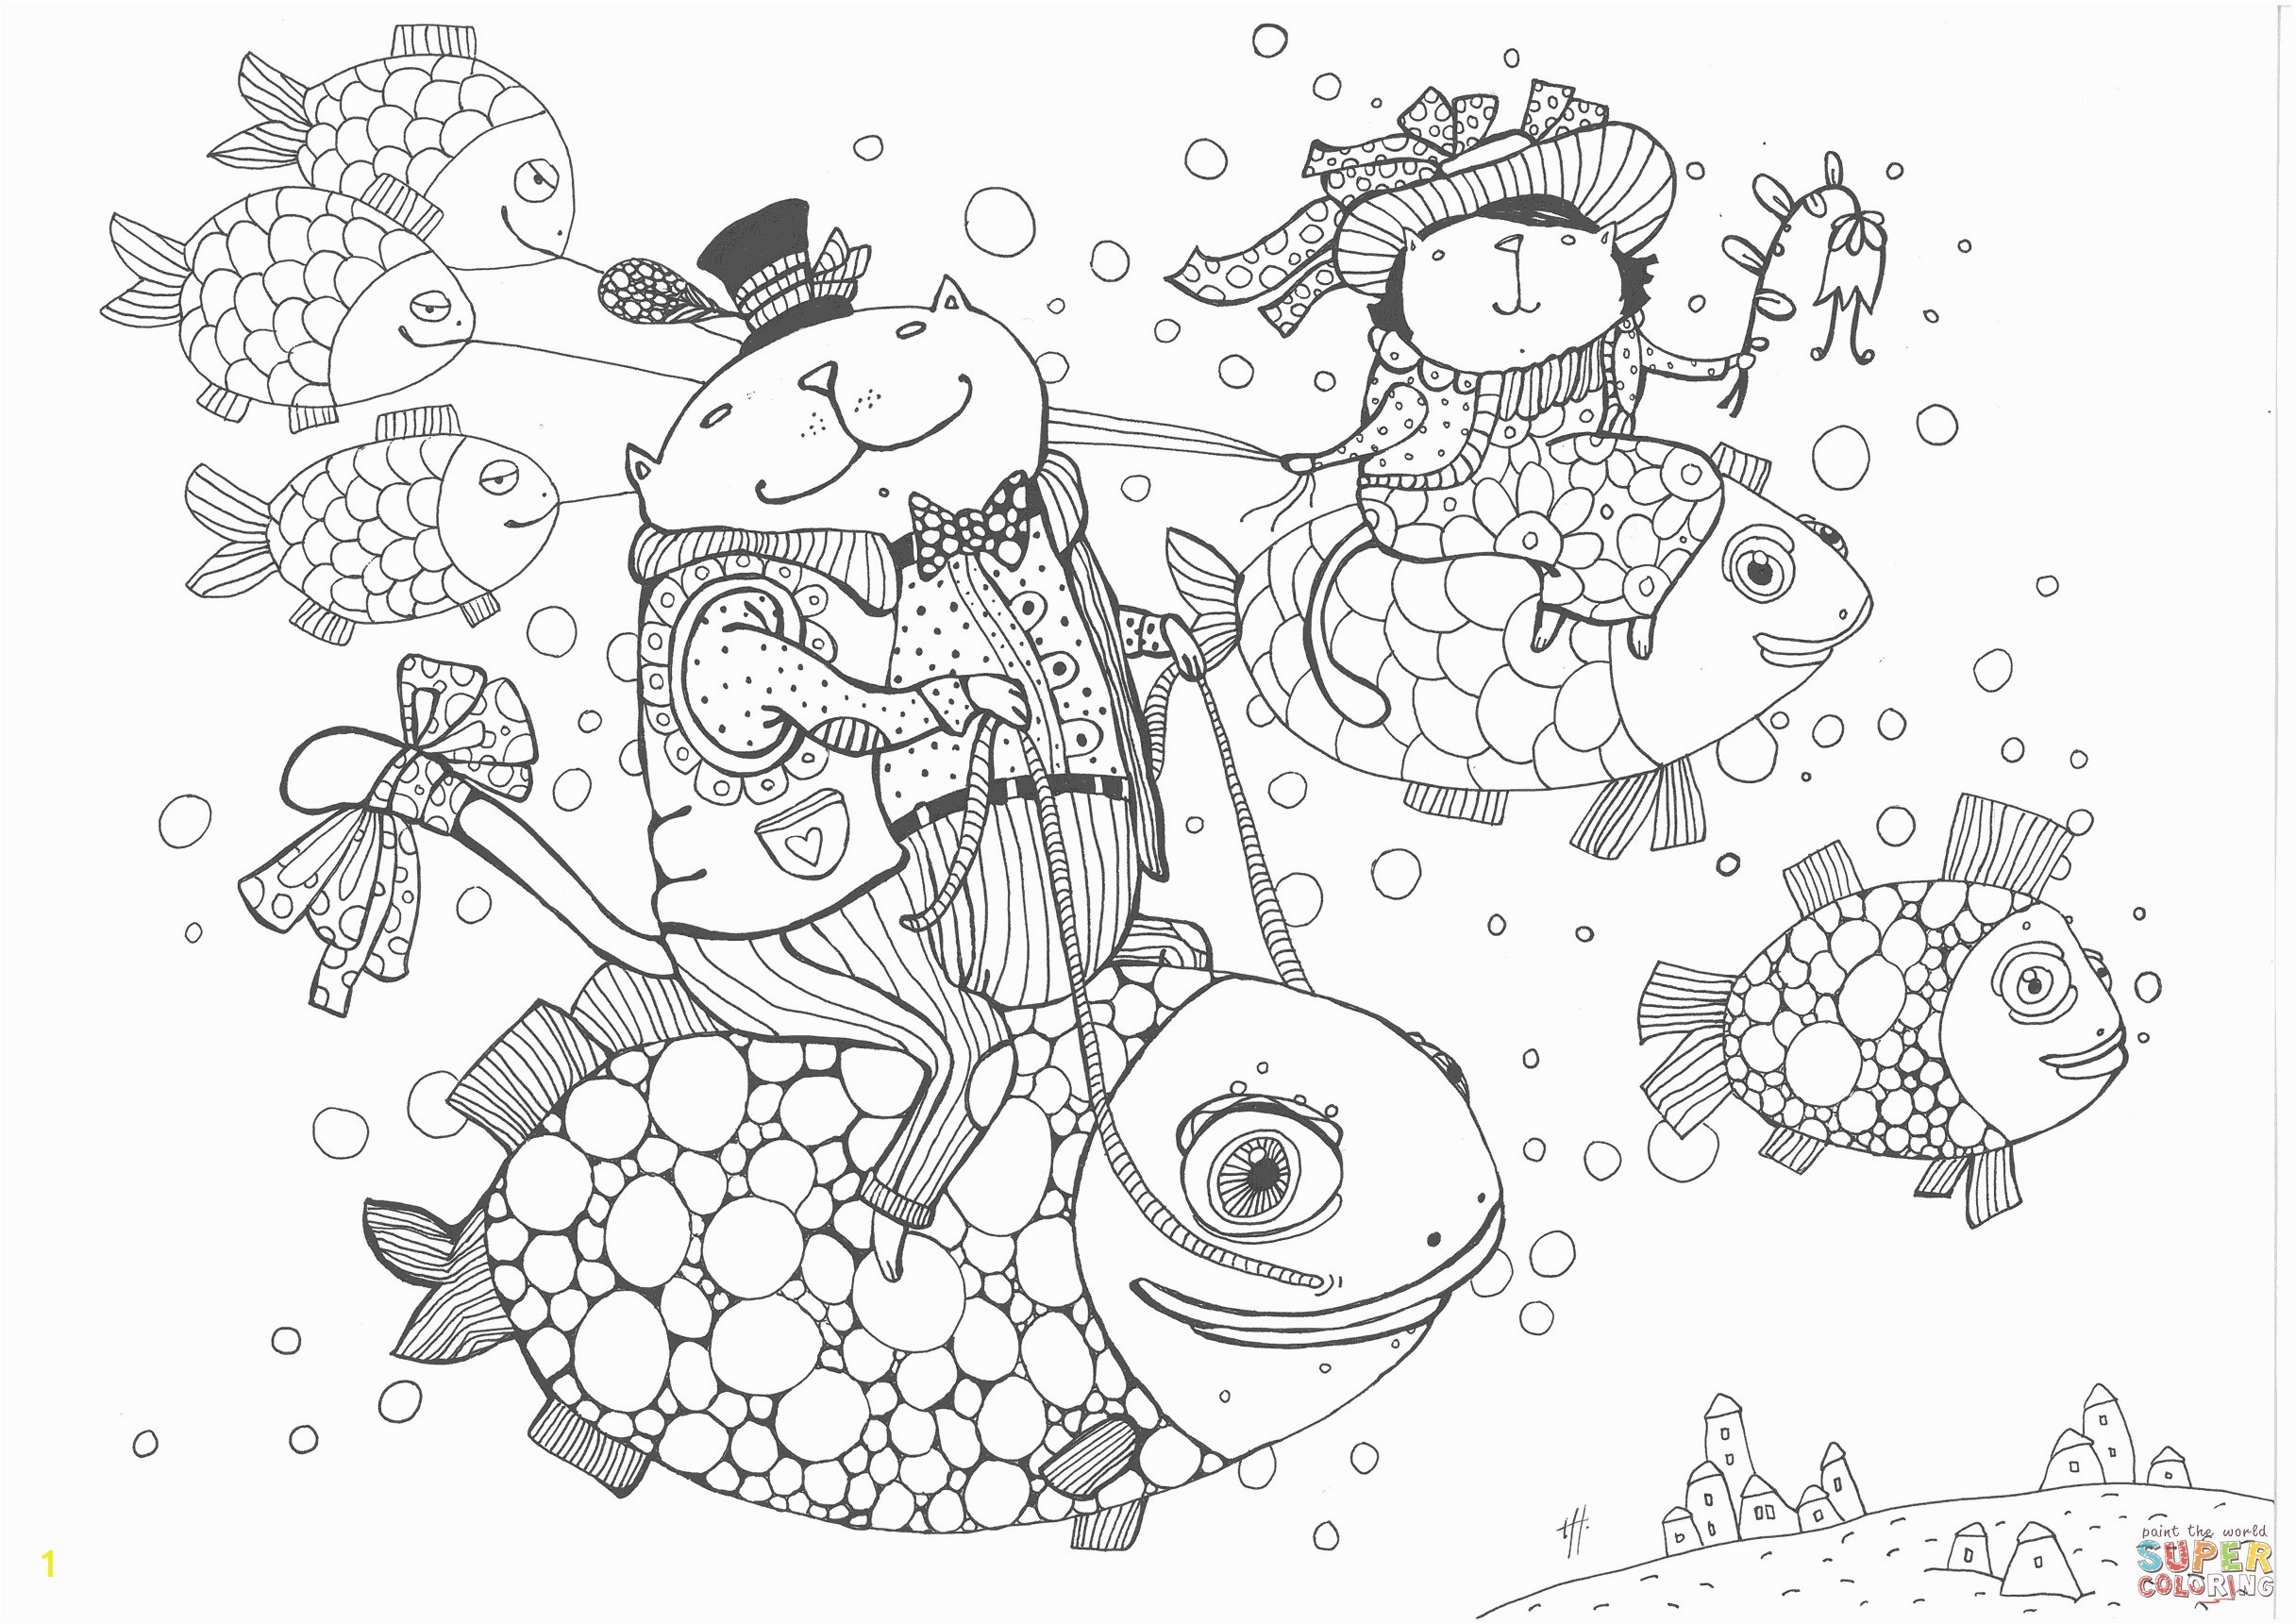 Koi Fish Coloring Page New Cats Fly Fish Coloring Page Koi Fish Coloring Page Unique